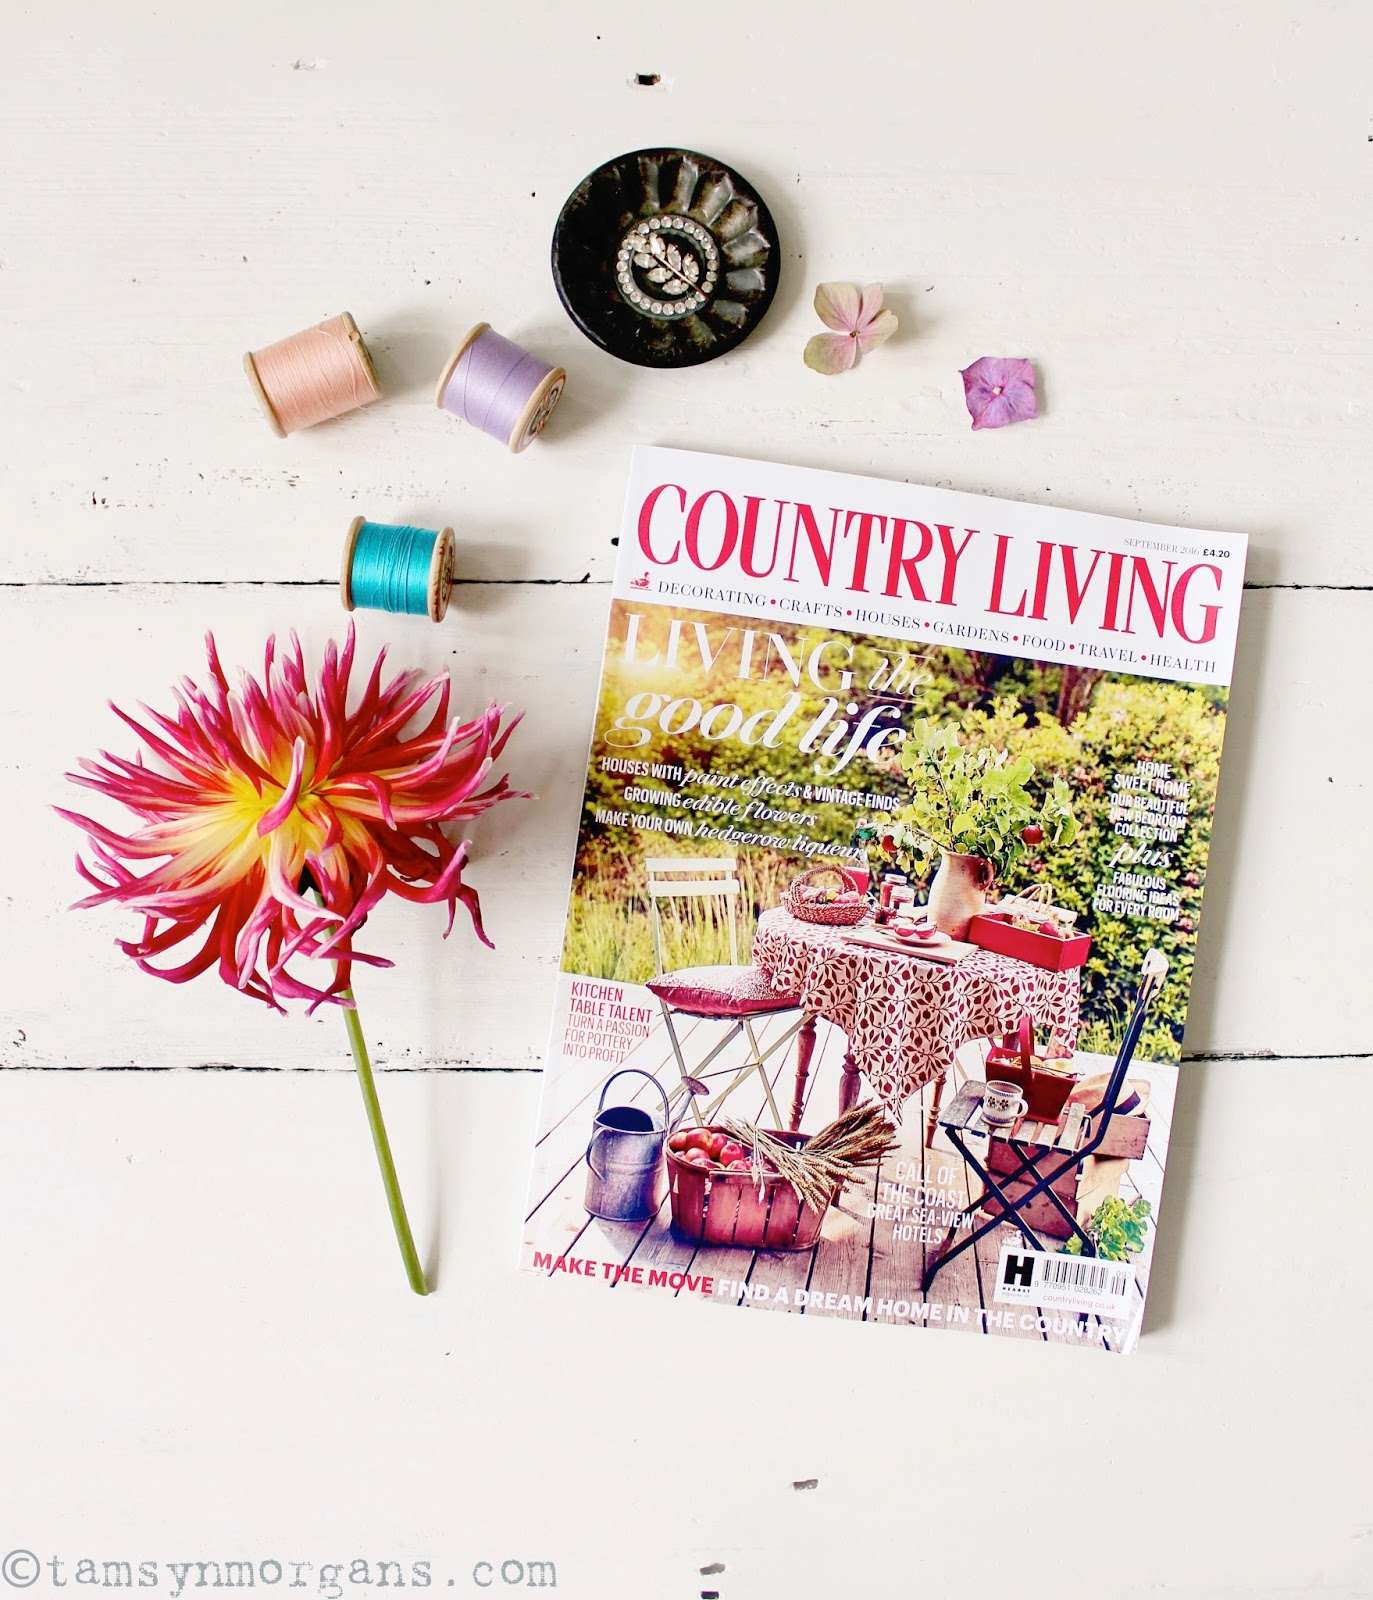 Country Living Magazine – My Home Feature